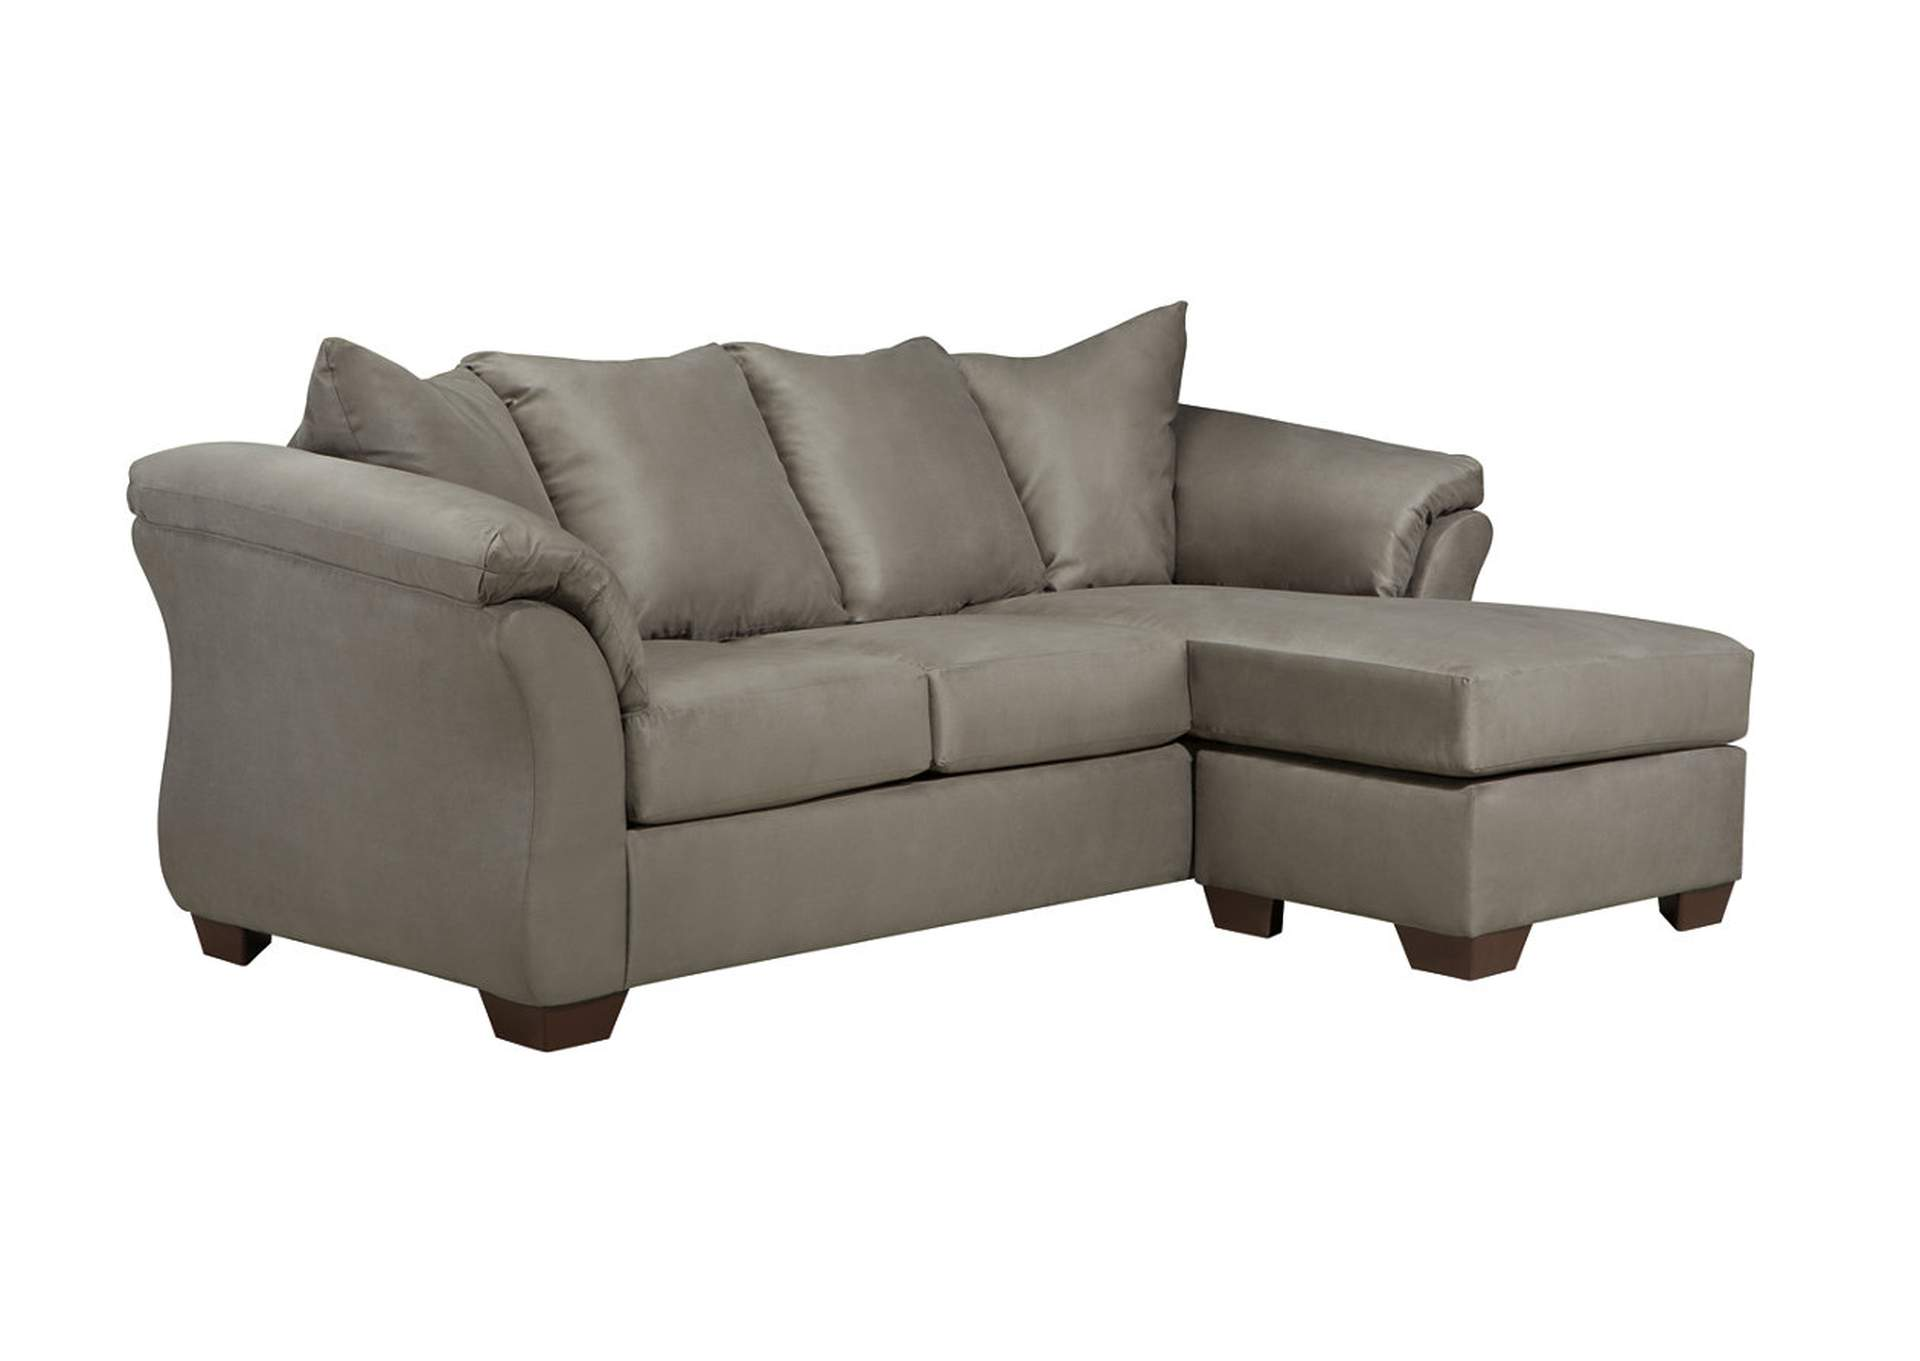 American furniture design darcy cobblestone sofa chaise for Chaise design coloree